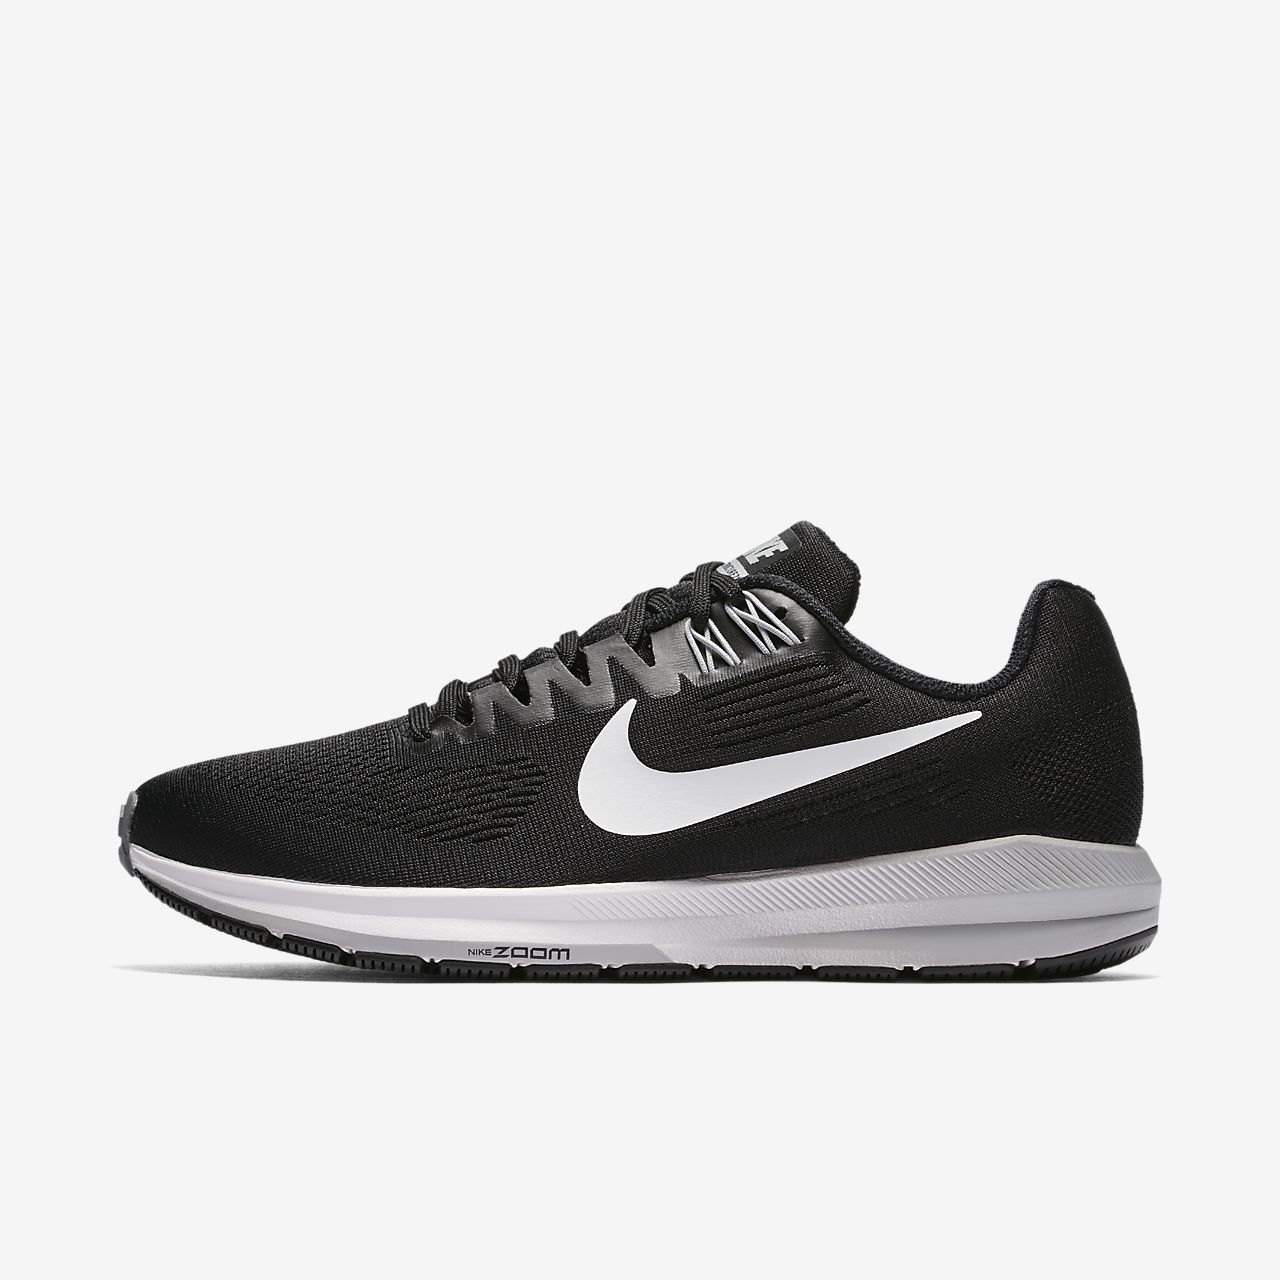 Chaussures Nike Zoom Structure grises Fashion homme Cz8Cwt1aD